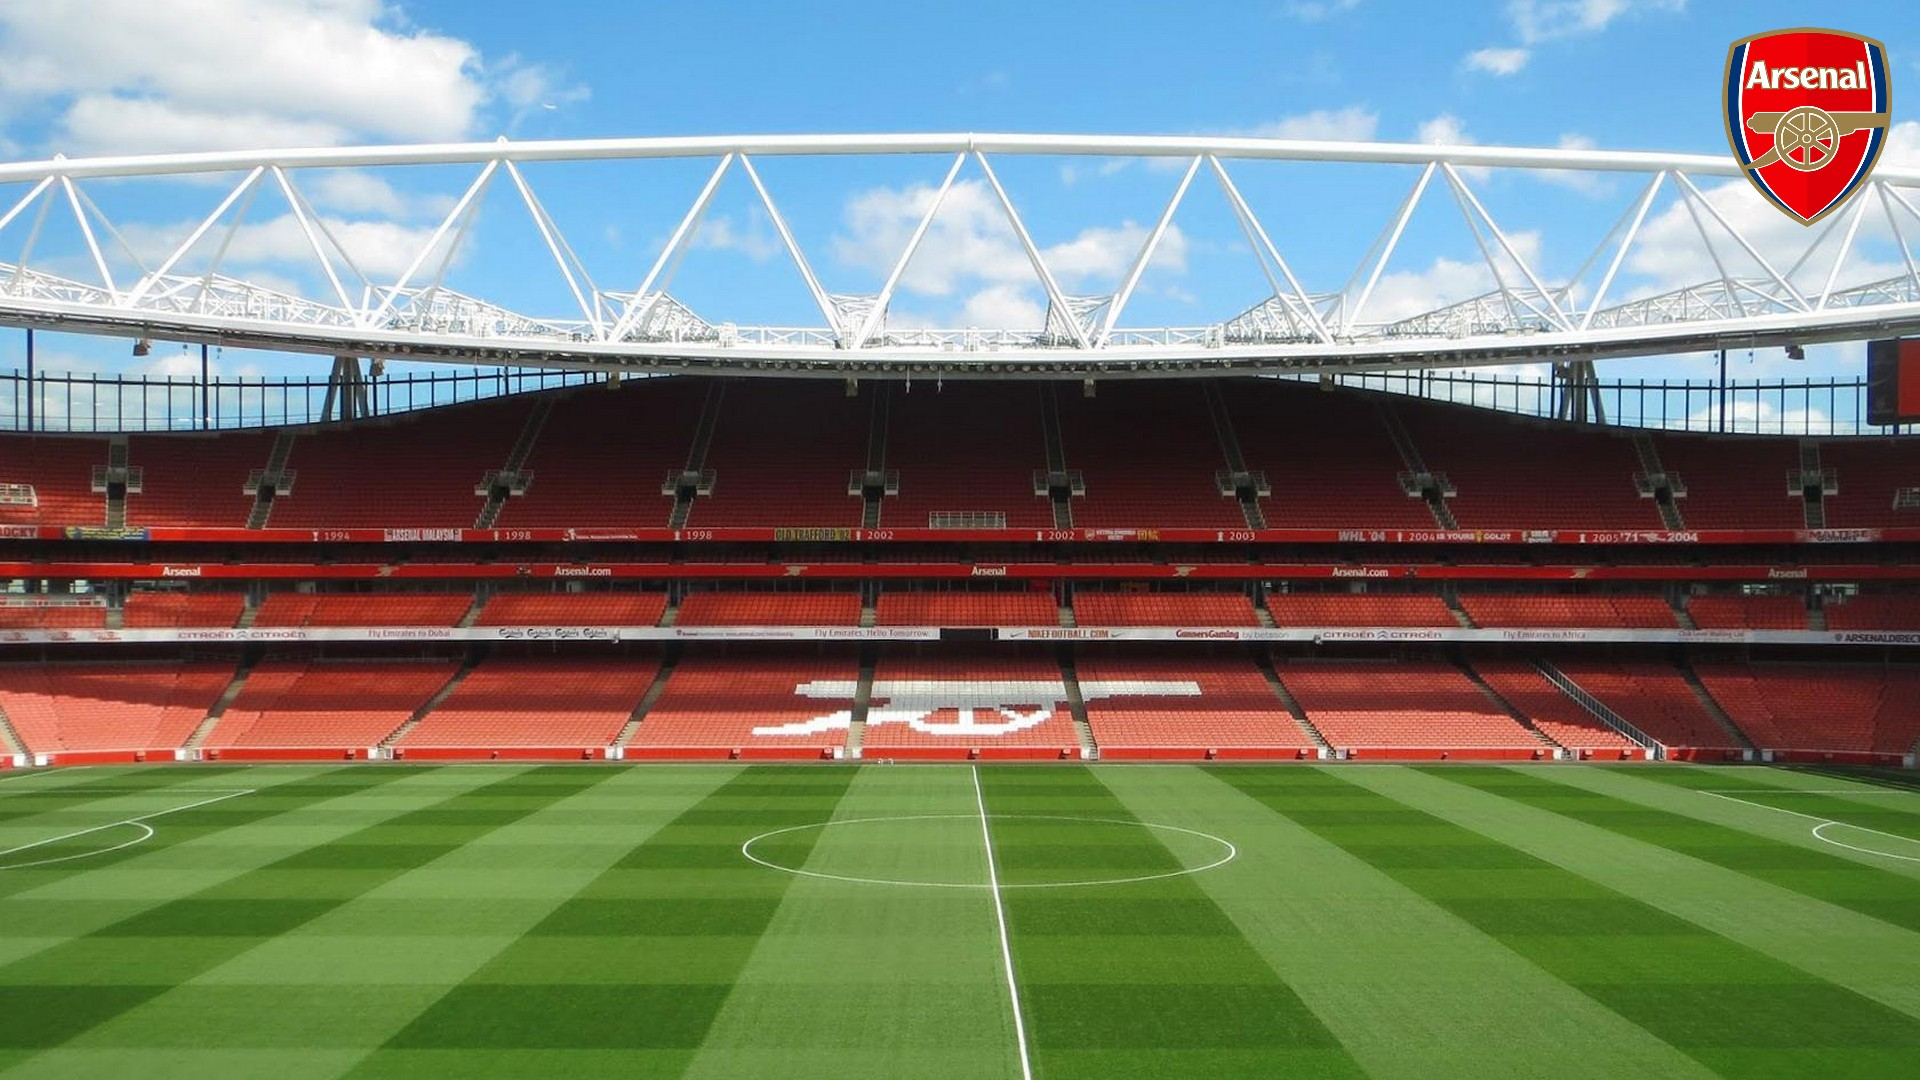 Arsenal Stadium Mac Backgrounds with resolution 1920x1080 pixel. You can make this wallpaper for your Mac or Windows Desktop Background, iPhone, Android or Tablet and another Smartphone device